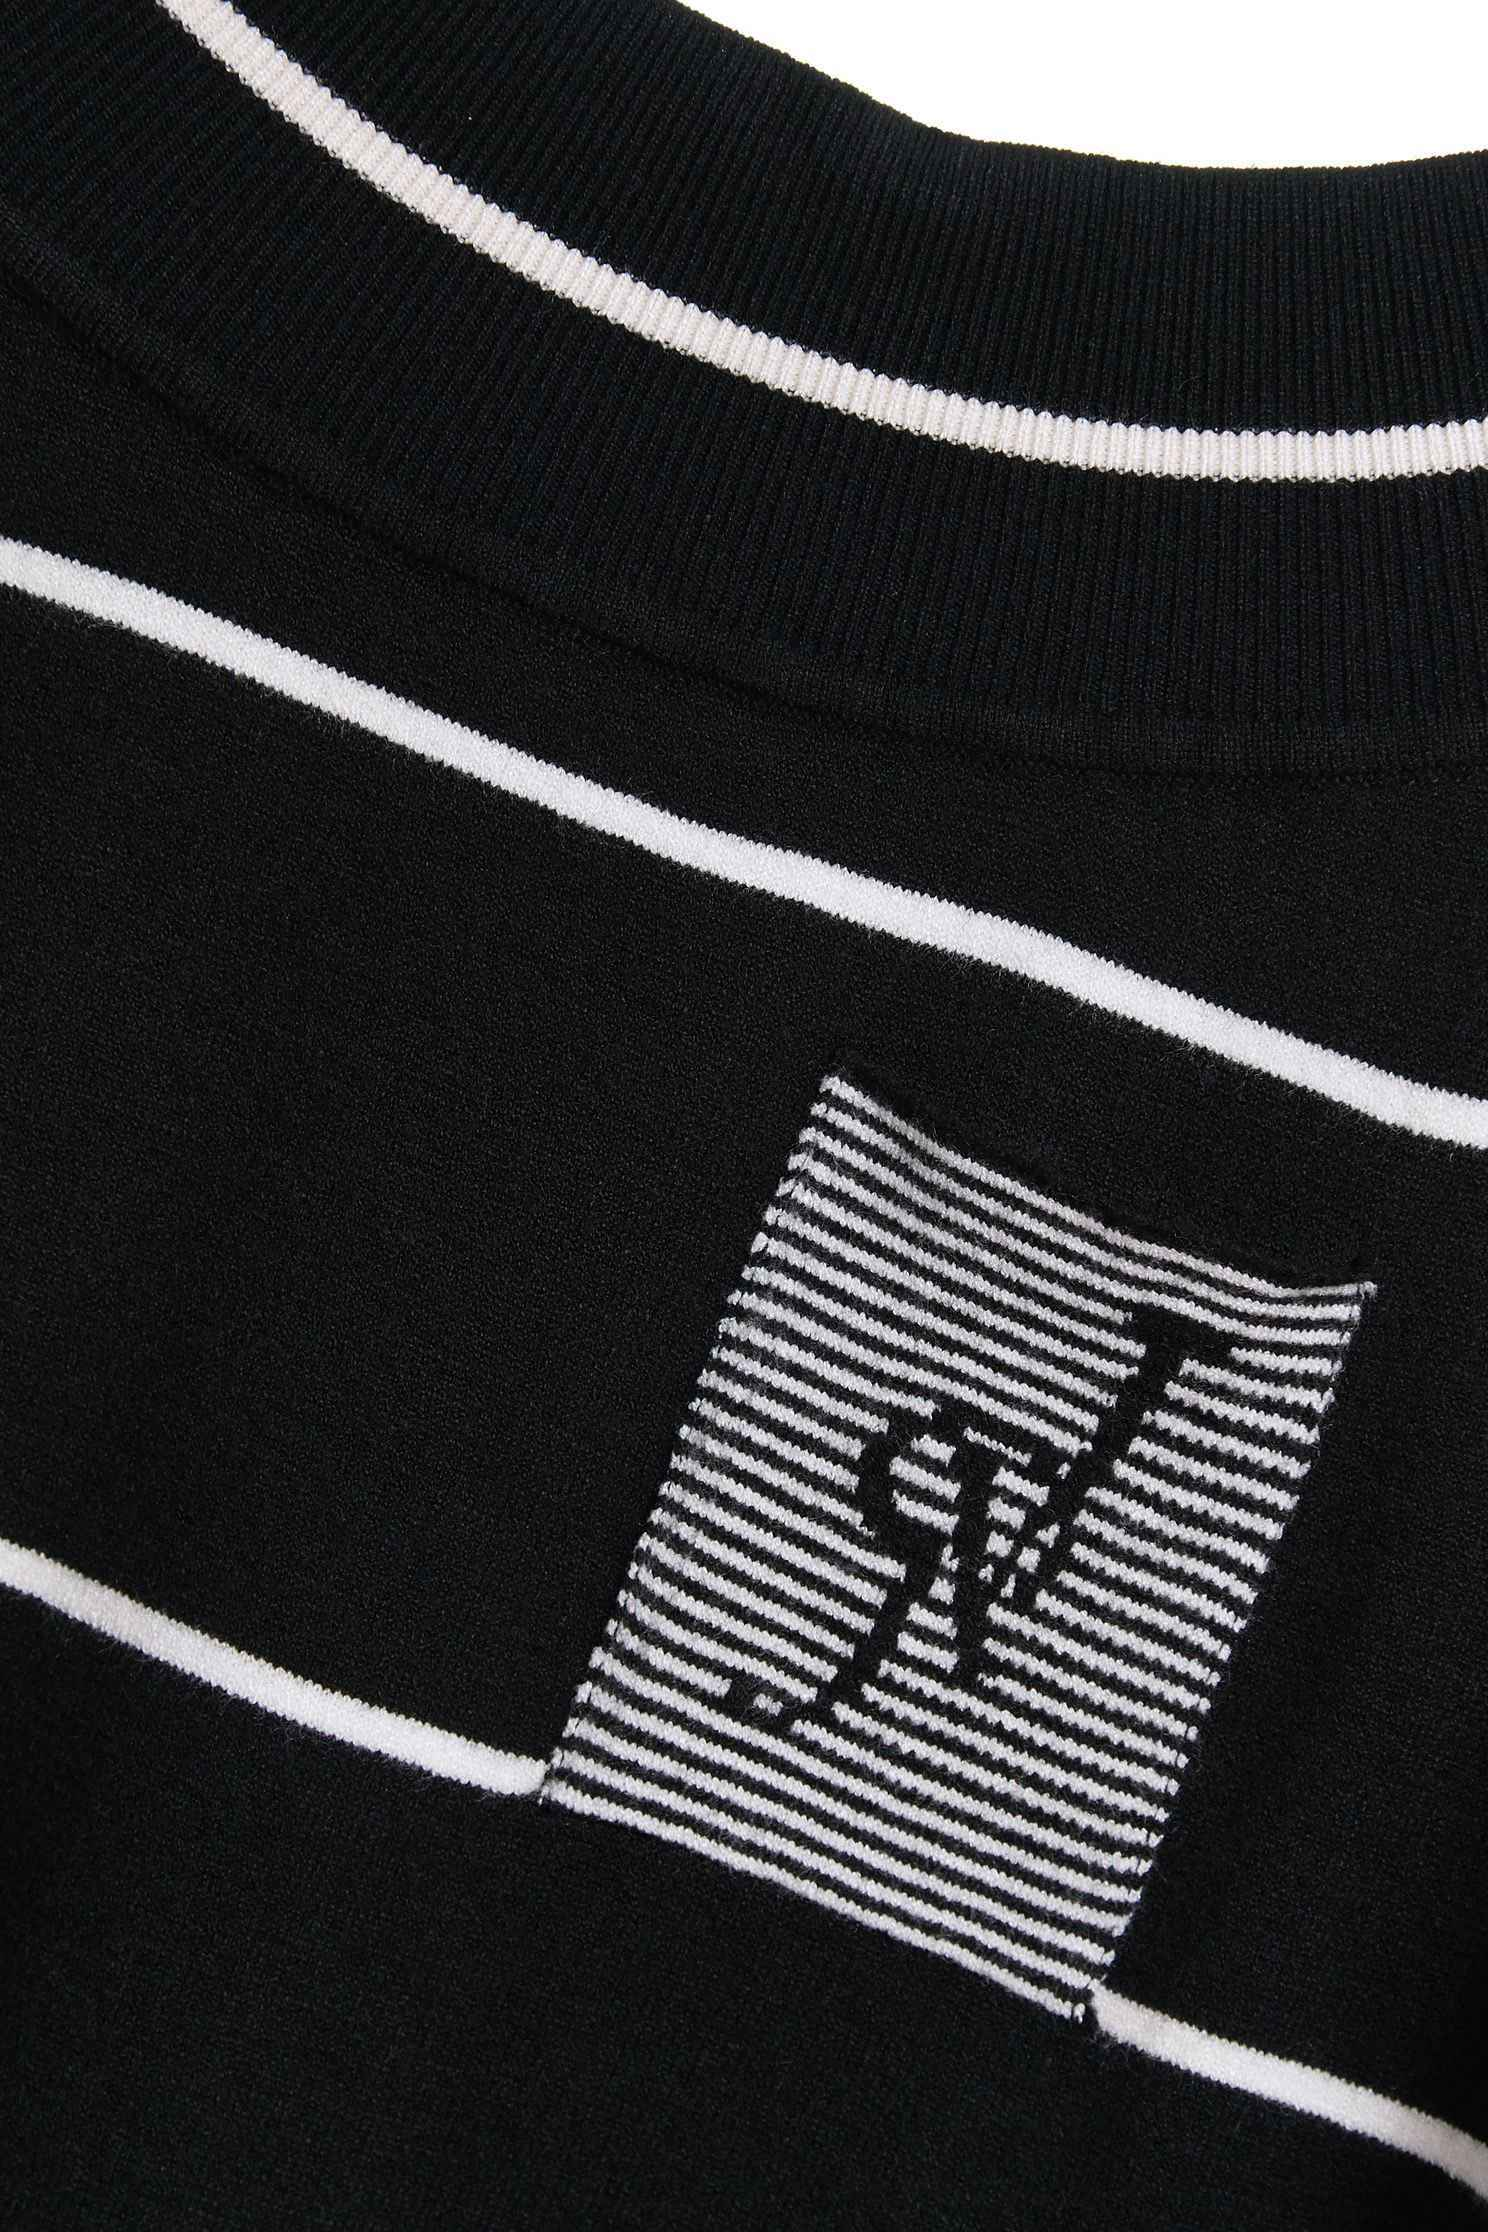 STRIPED Color knit sweater,roundnecktop,knitting,knittedtop,knittedtop,longsleevetop,blacktop